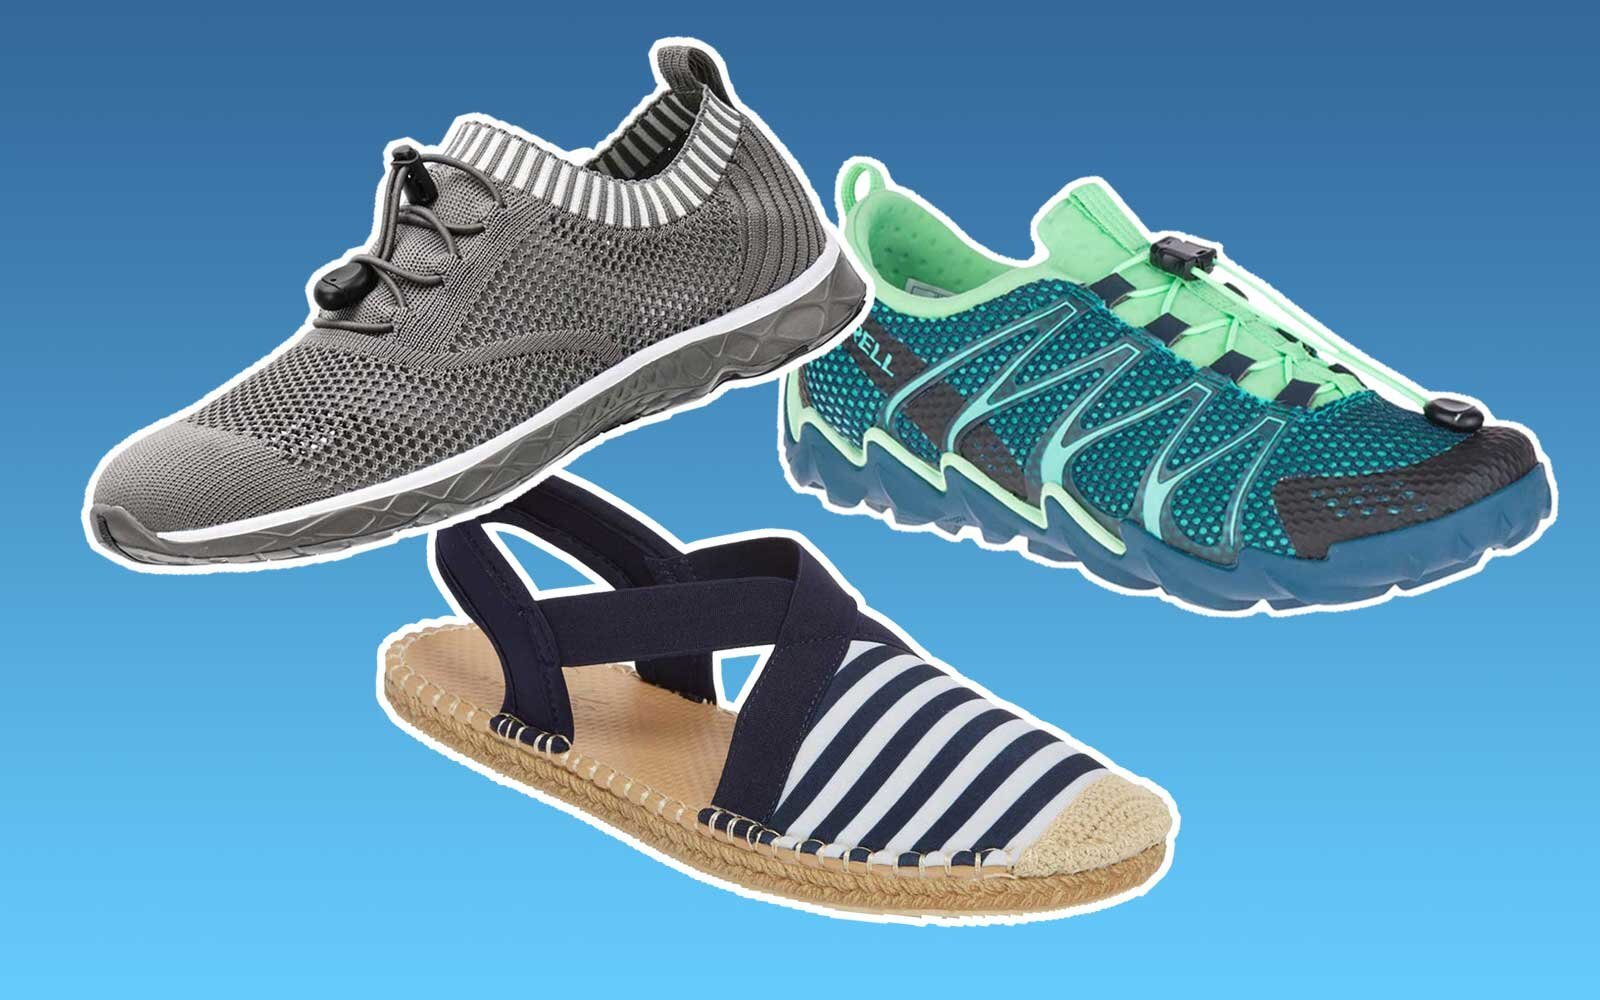 0c80889397756 The Best Water Shoes for Women in 2019 | Travel + Leisure